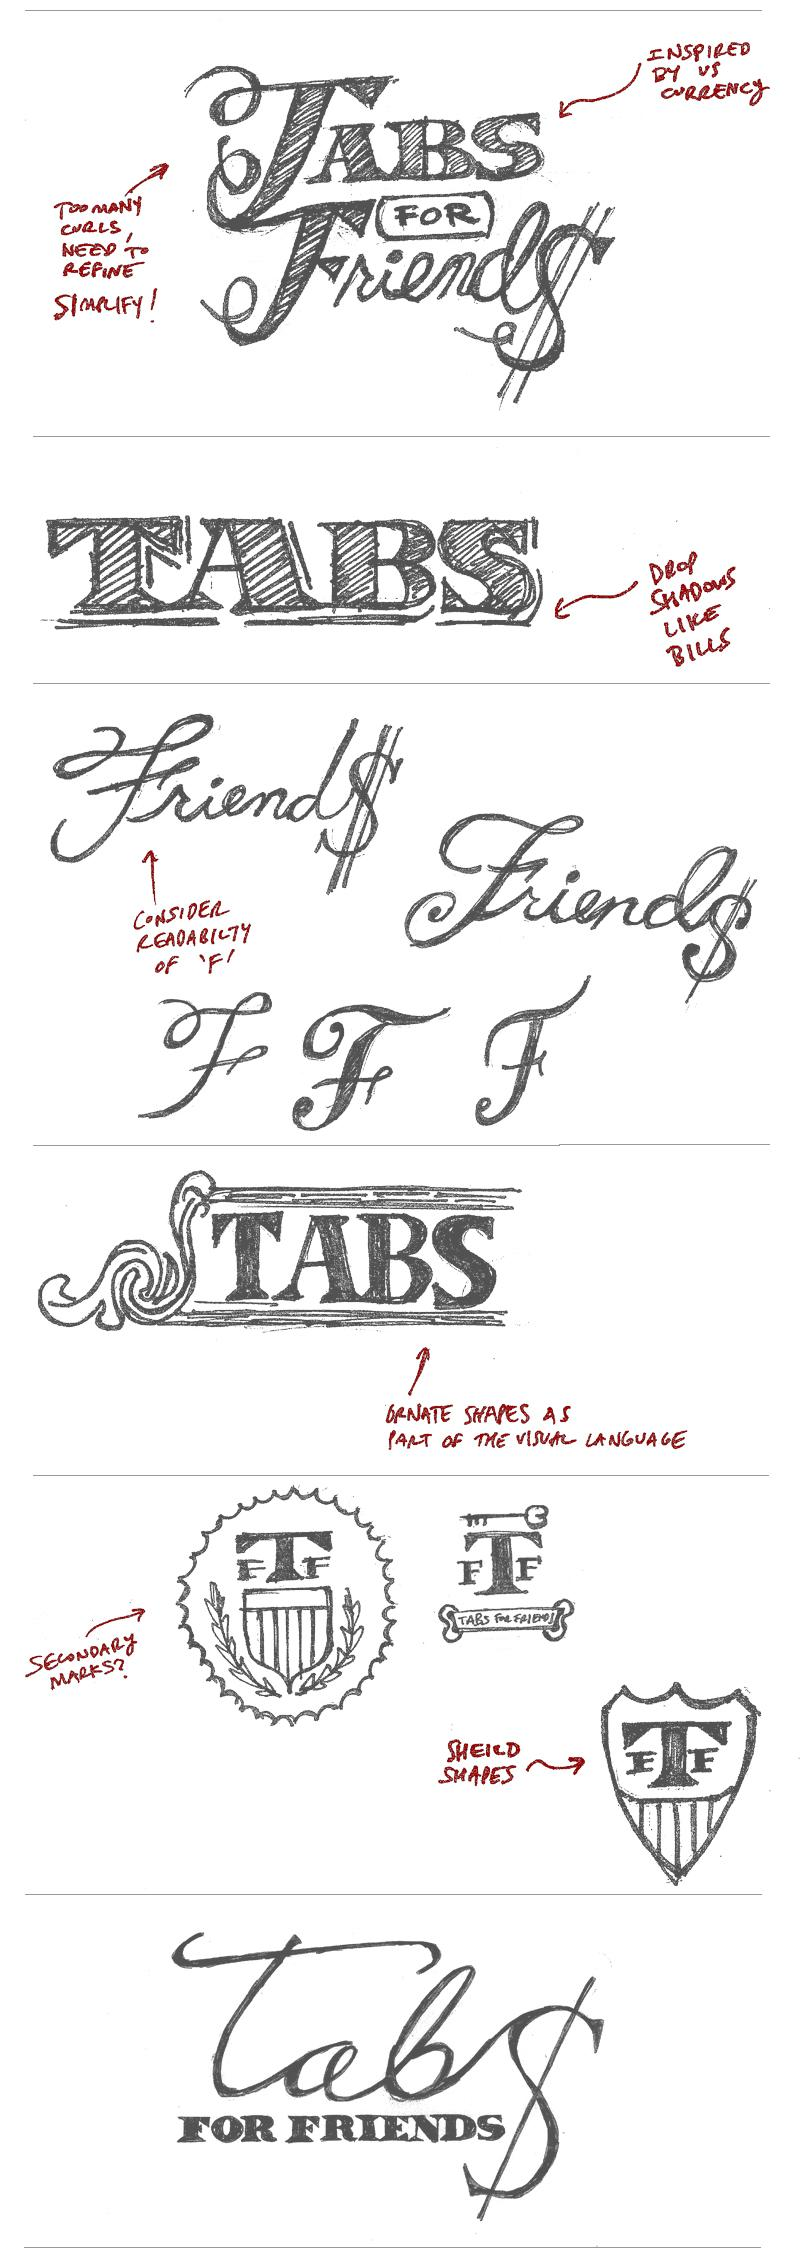 Tabs for Friends - image 1 - student project